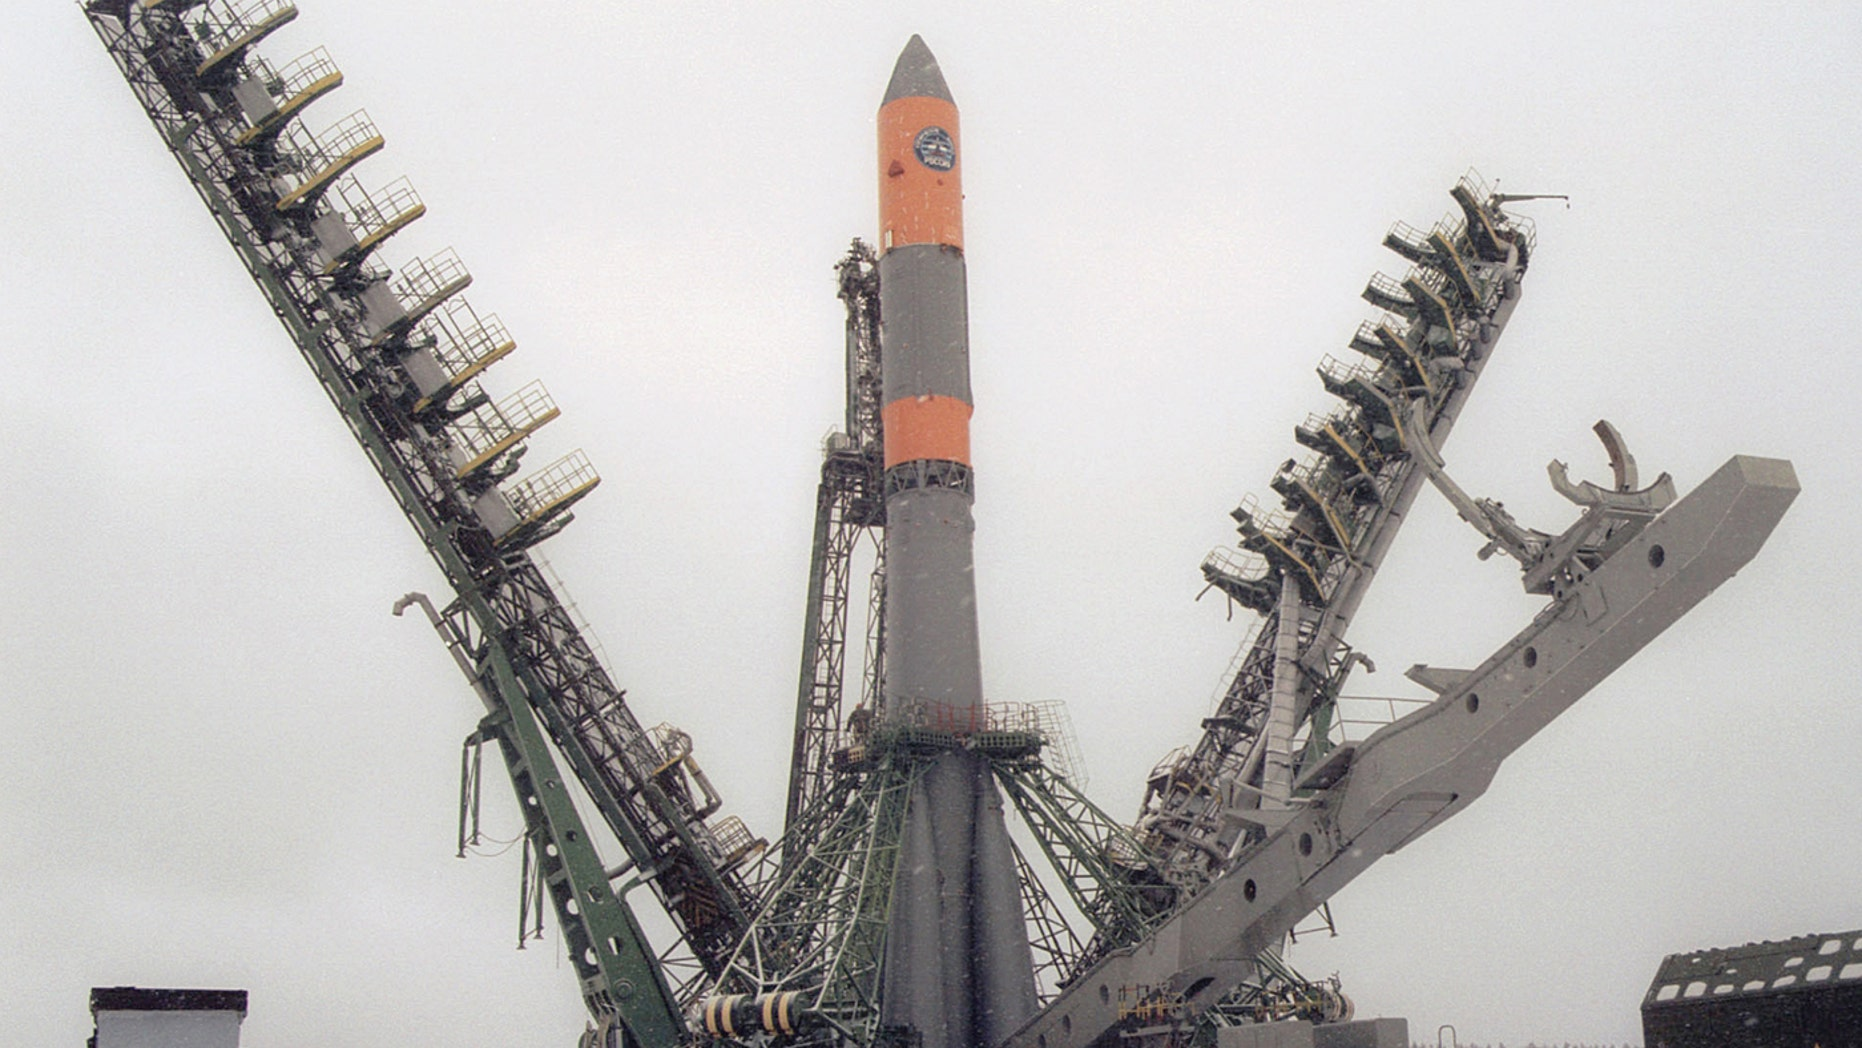 A molniya-m booster rocket is seen at a launching pad of the Plesetsk Cosmodrome shortly before its firing, Arkhangelsk region, Russia, April 2, 2003.,